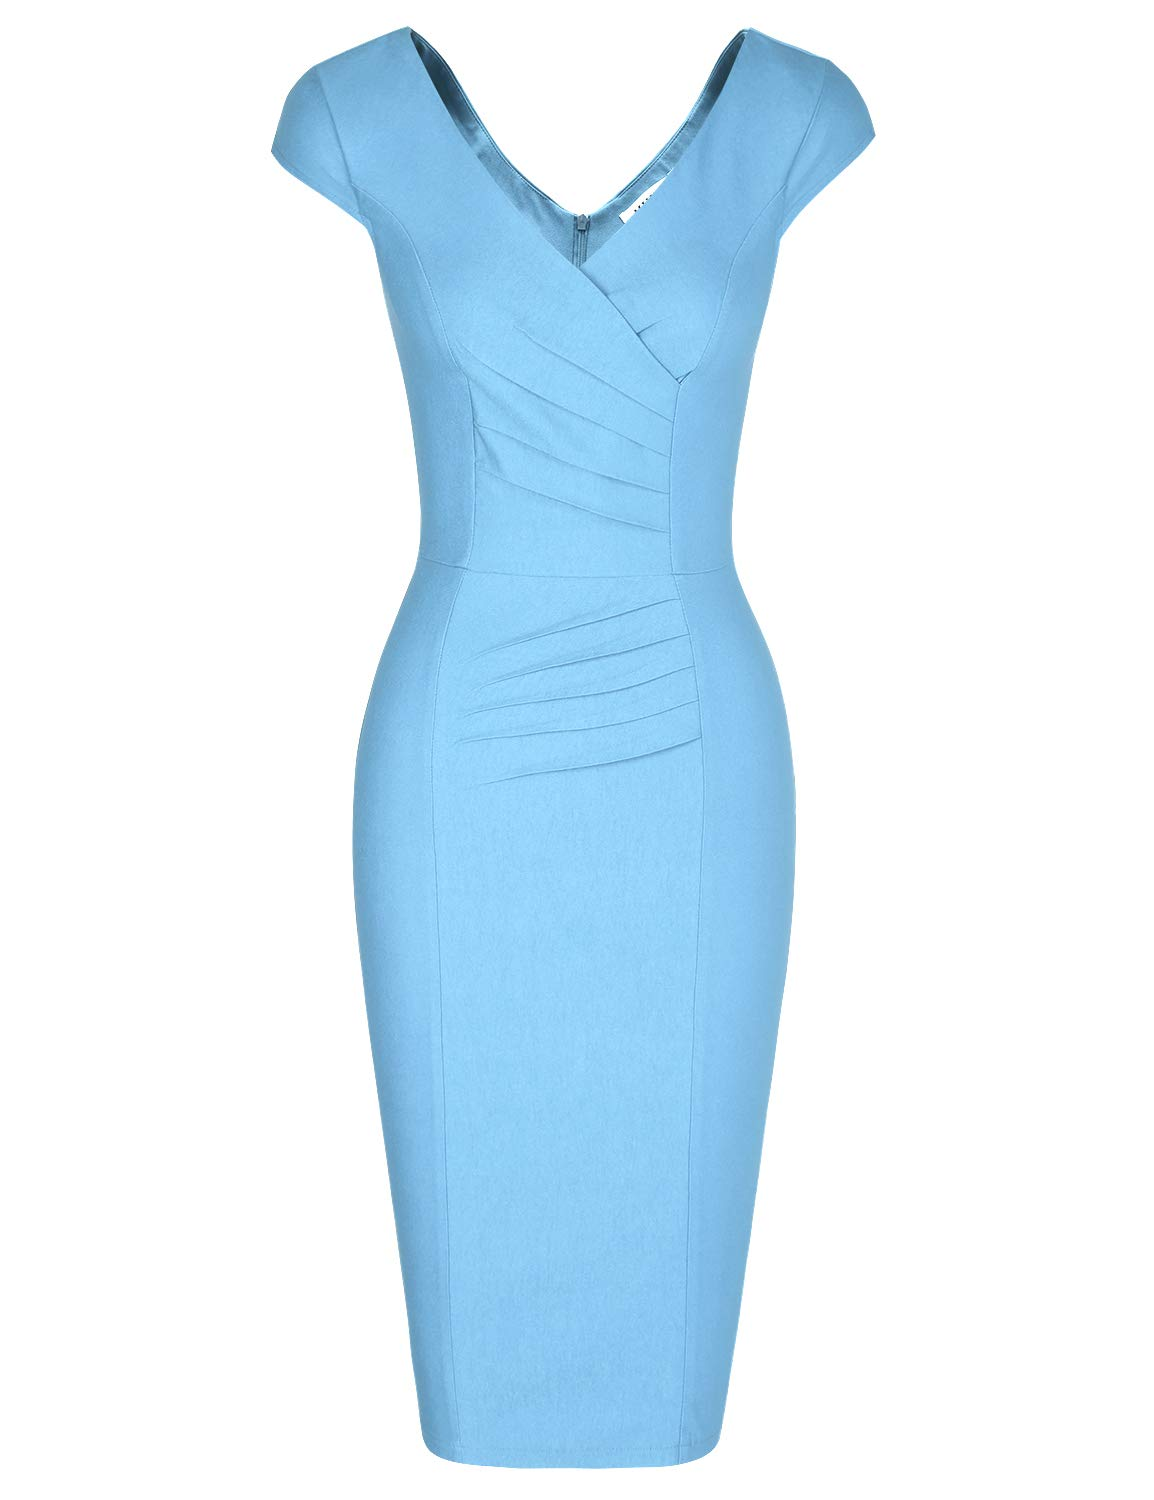 MUXXN Women's 1950's Vintage V Neck Ruched Sheath Formal Pencil Dress